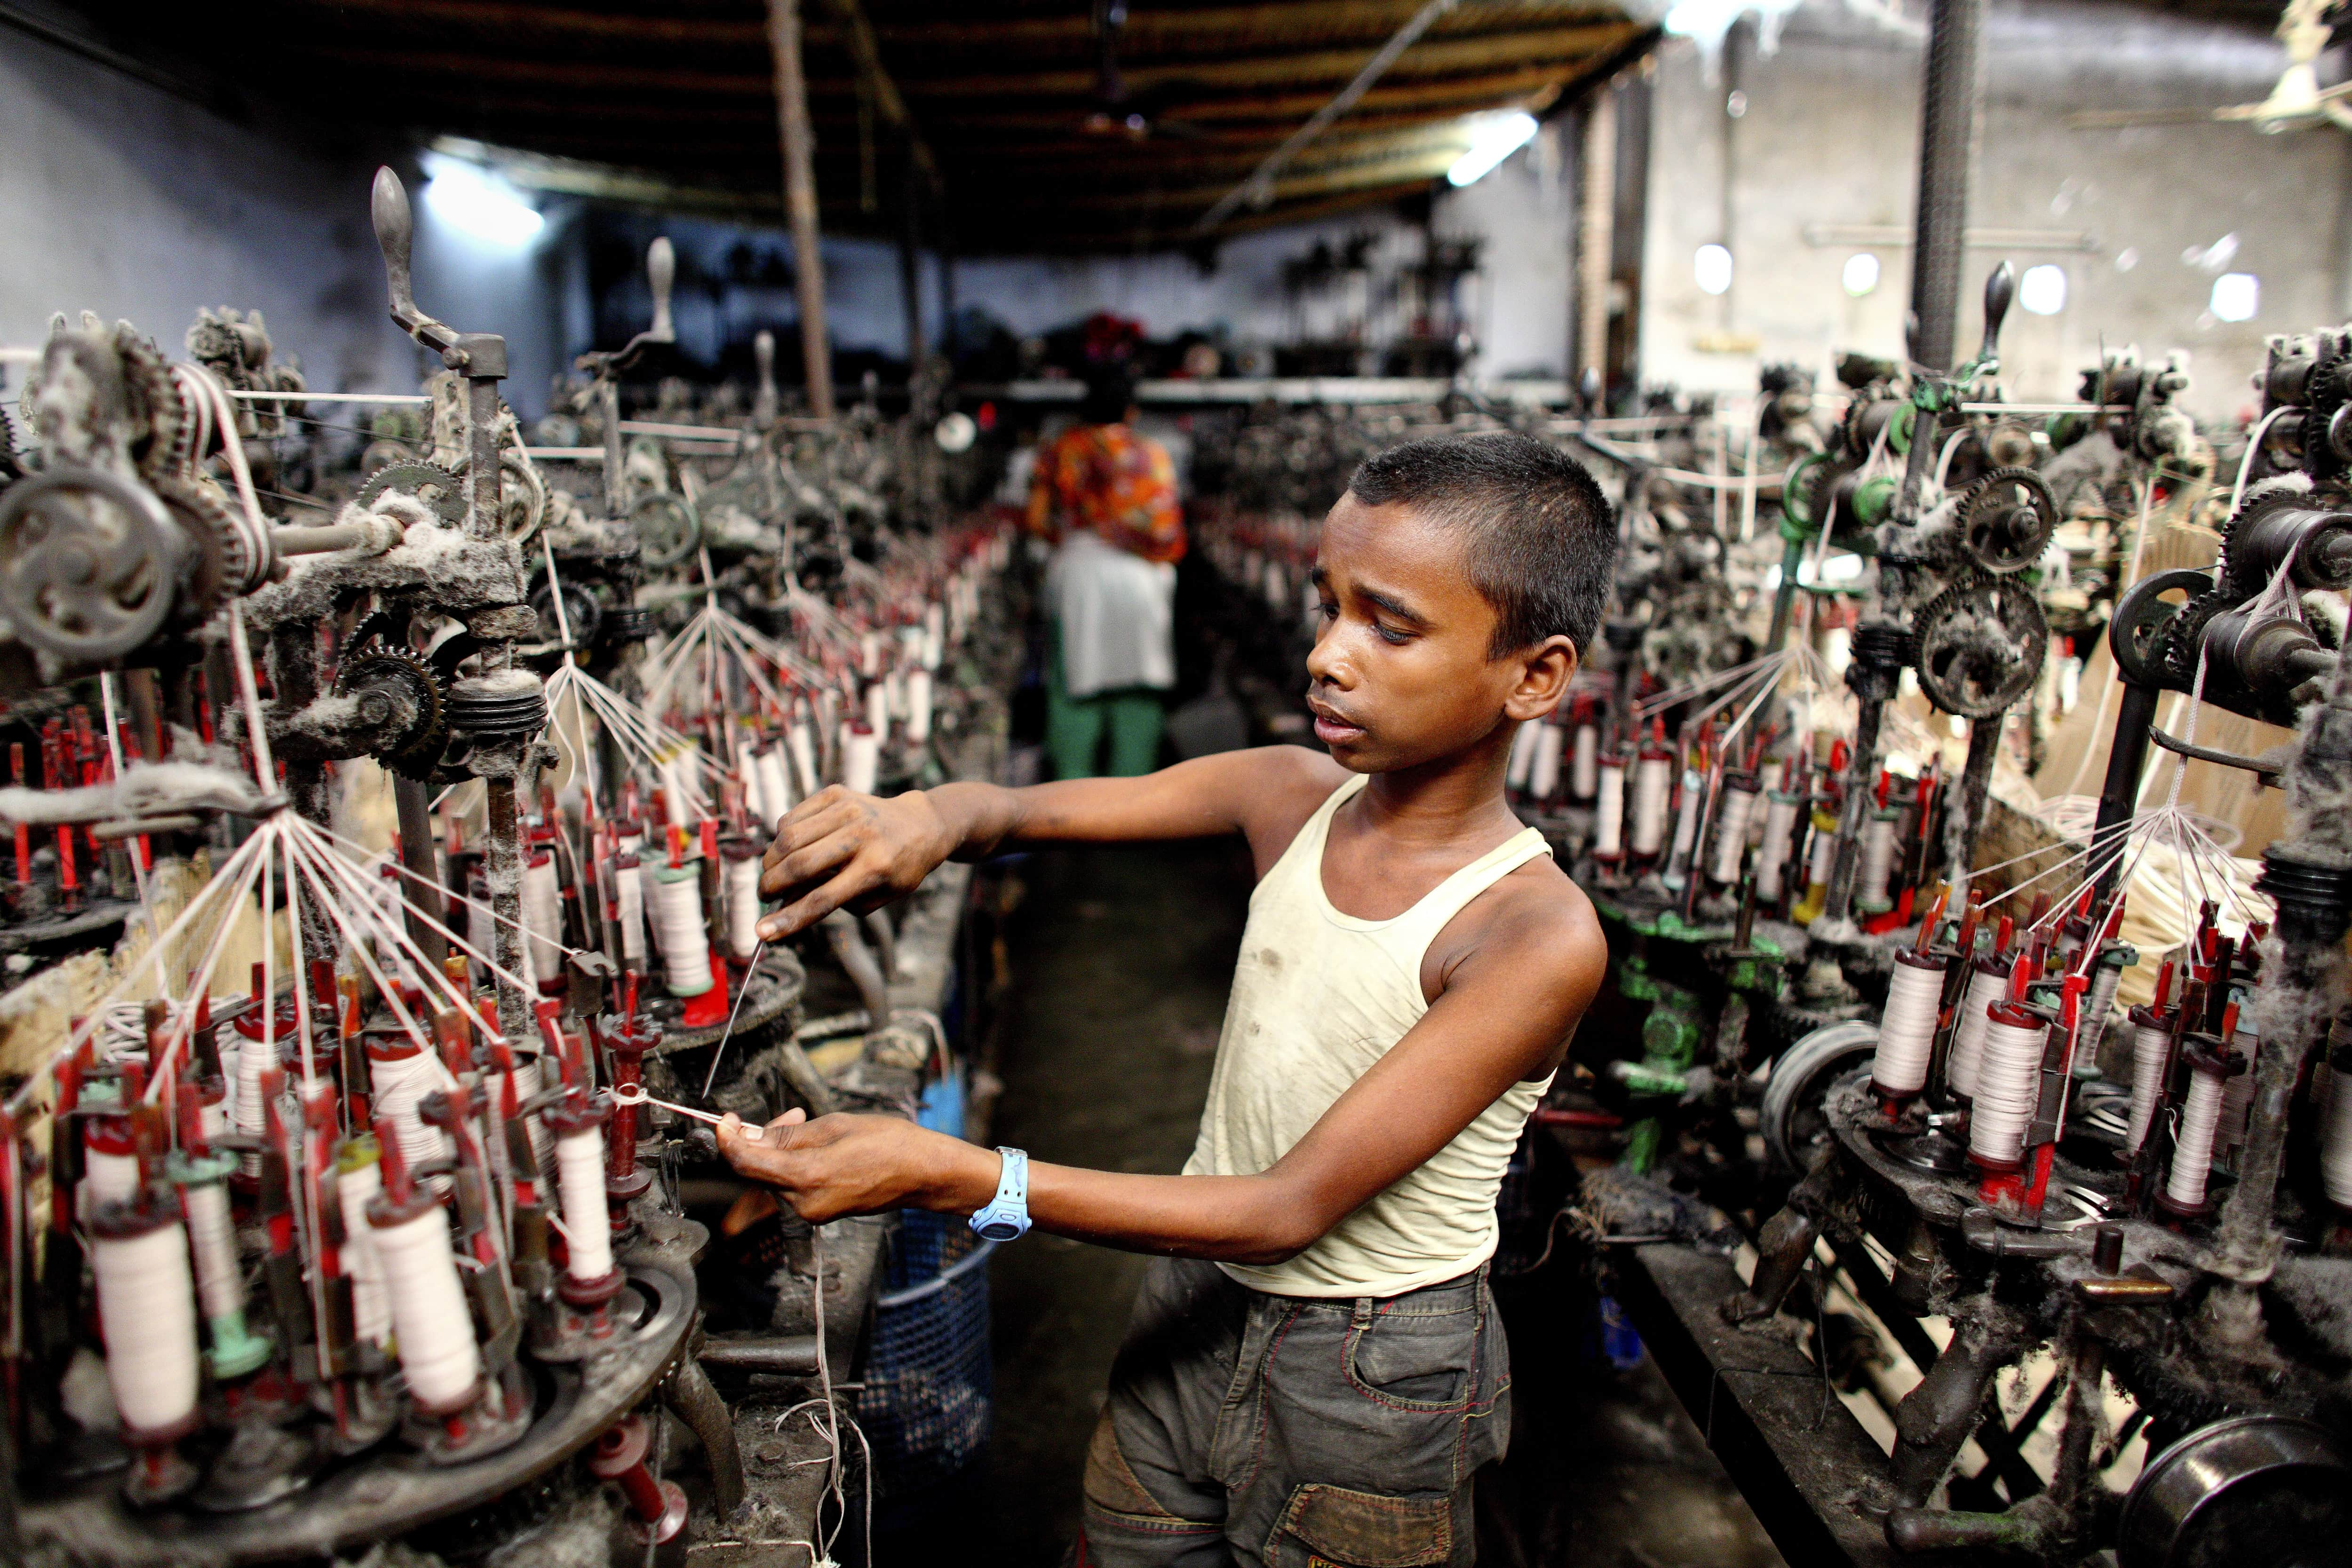 million children are engaged in child labour, with many making textiles and garments to satisfy the demand of consumers in Europe, the US, and beyond Children work at all stages of the supply chain in the fashion industry: from the production of cotton seeds in Benin, harvesting in Uzbekistan, yarn spinning in India, right through to the different phases of putting garments together in factories across .